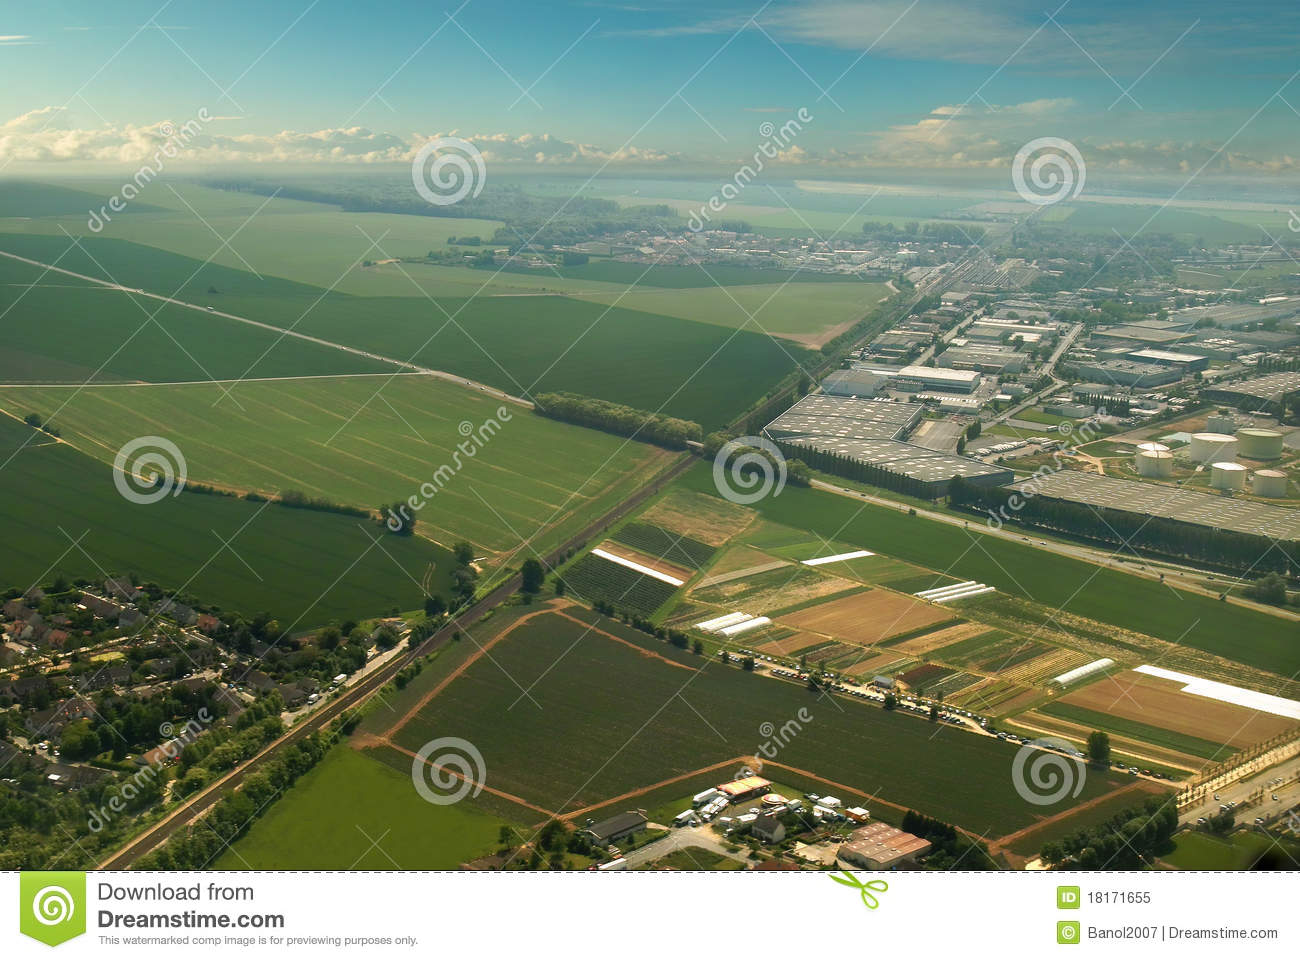 Download Aerial Of Green Countryside & Industrial City. Stock Image - Image of ecology, bright: 18171655